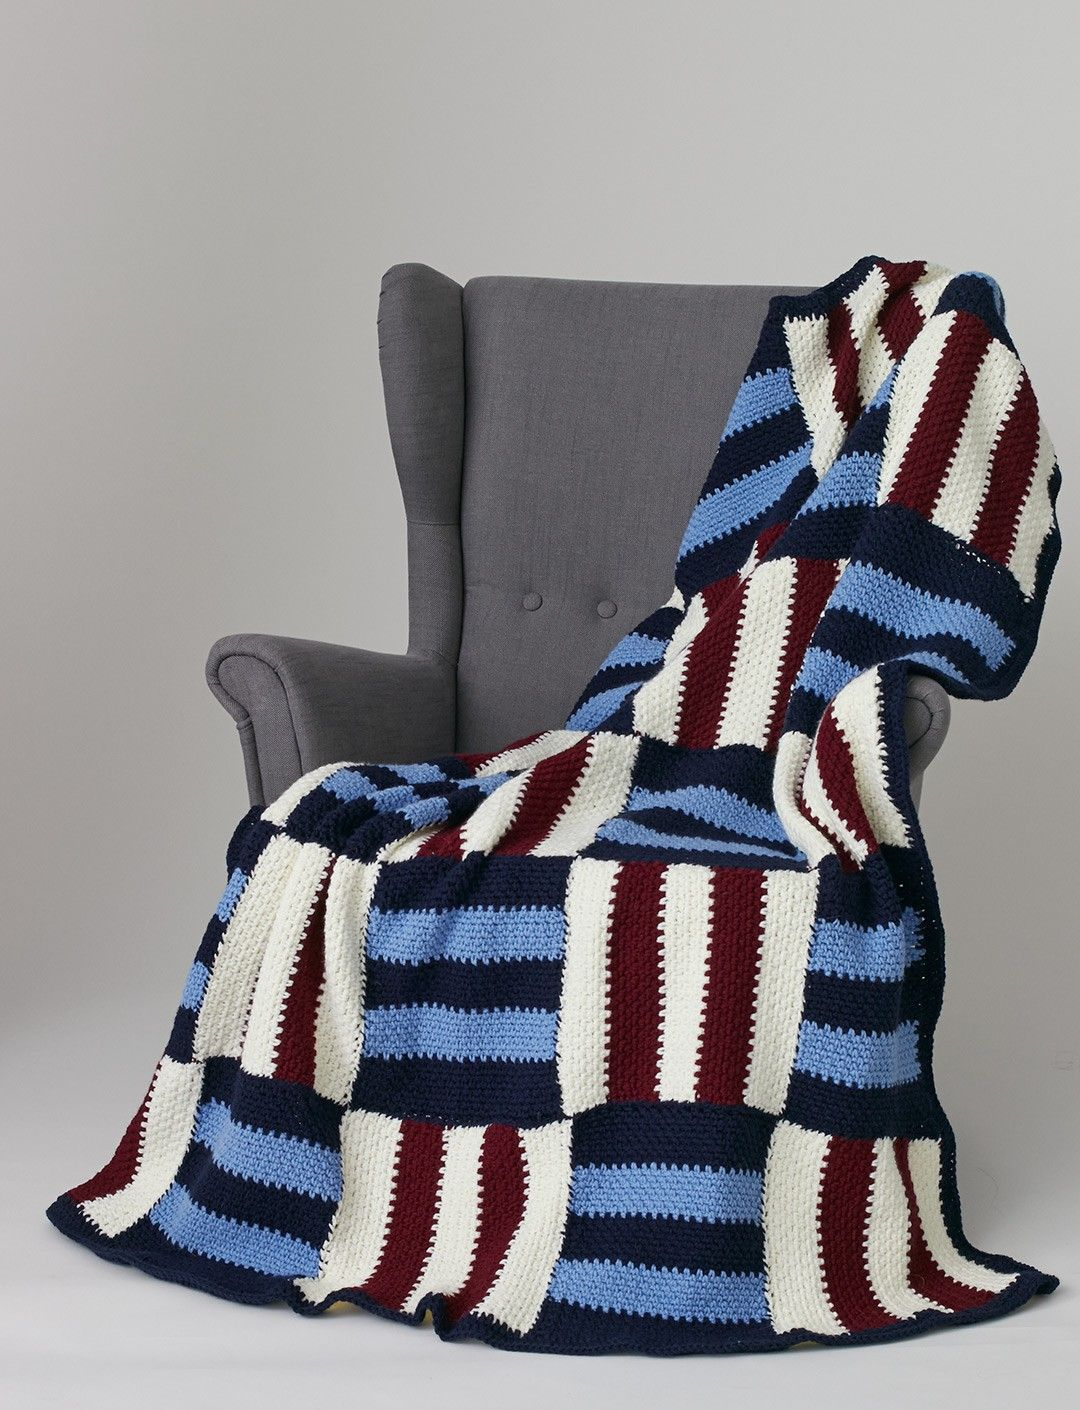 Yarnspirations.com - Caron Striped Parquet Afghan - Patterns ...